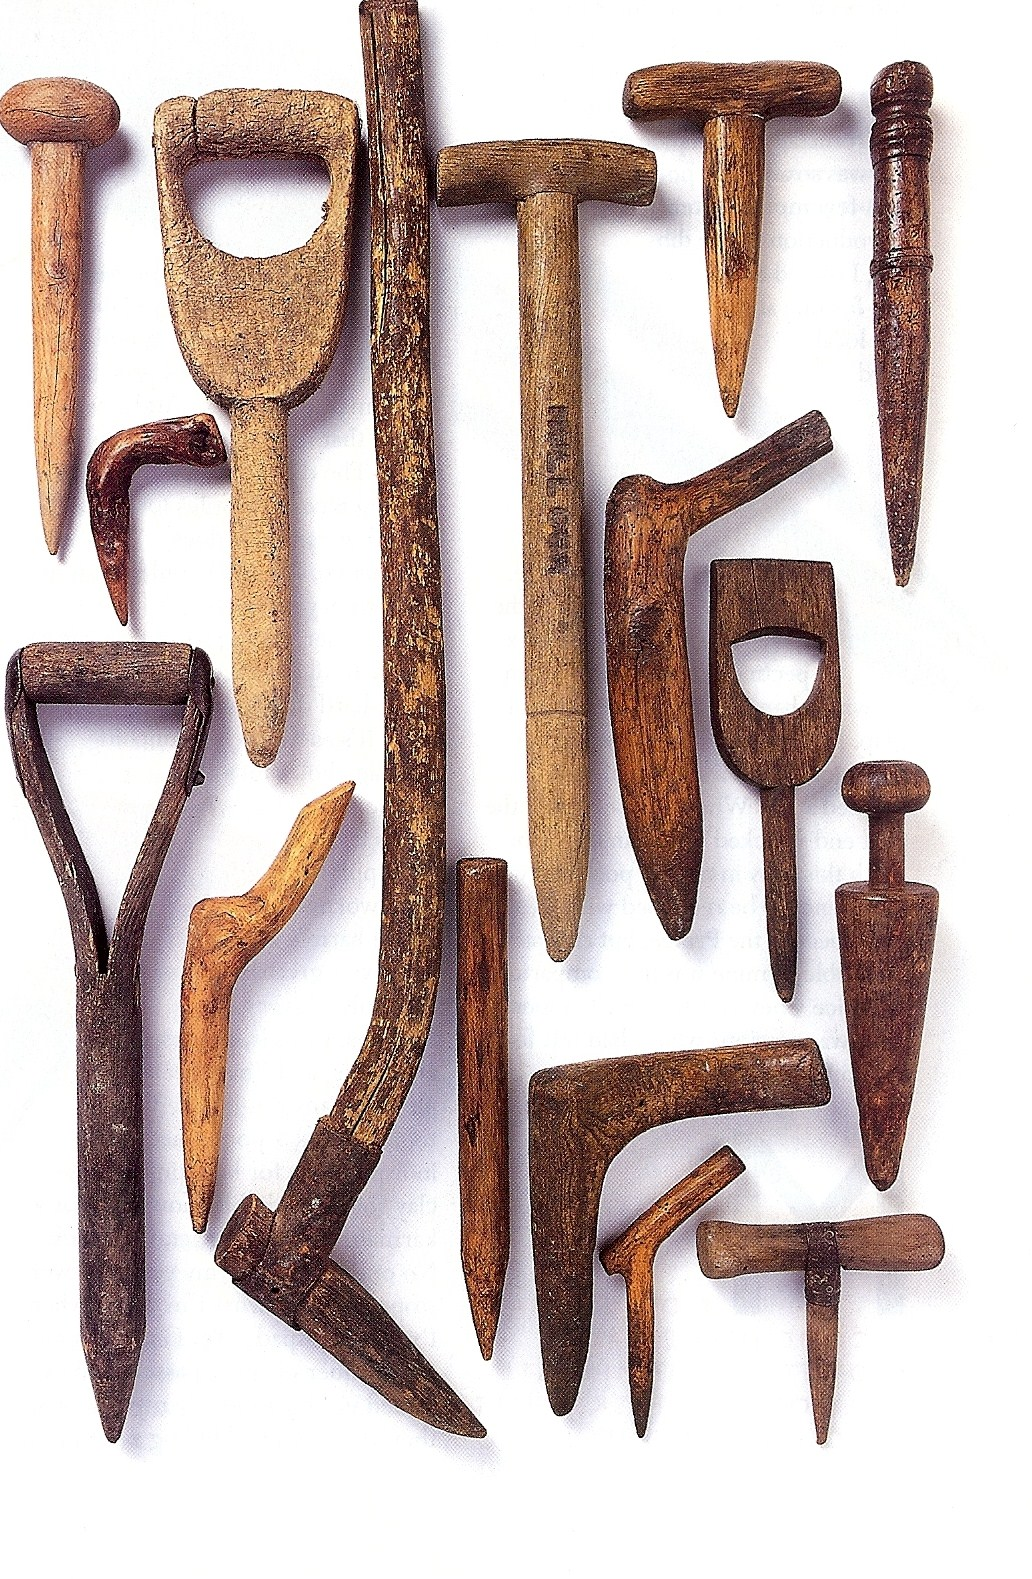 Garden tools from early American Gardens